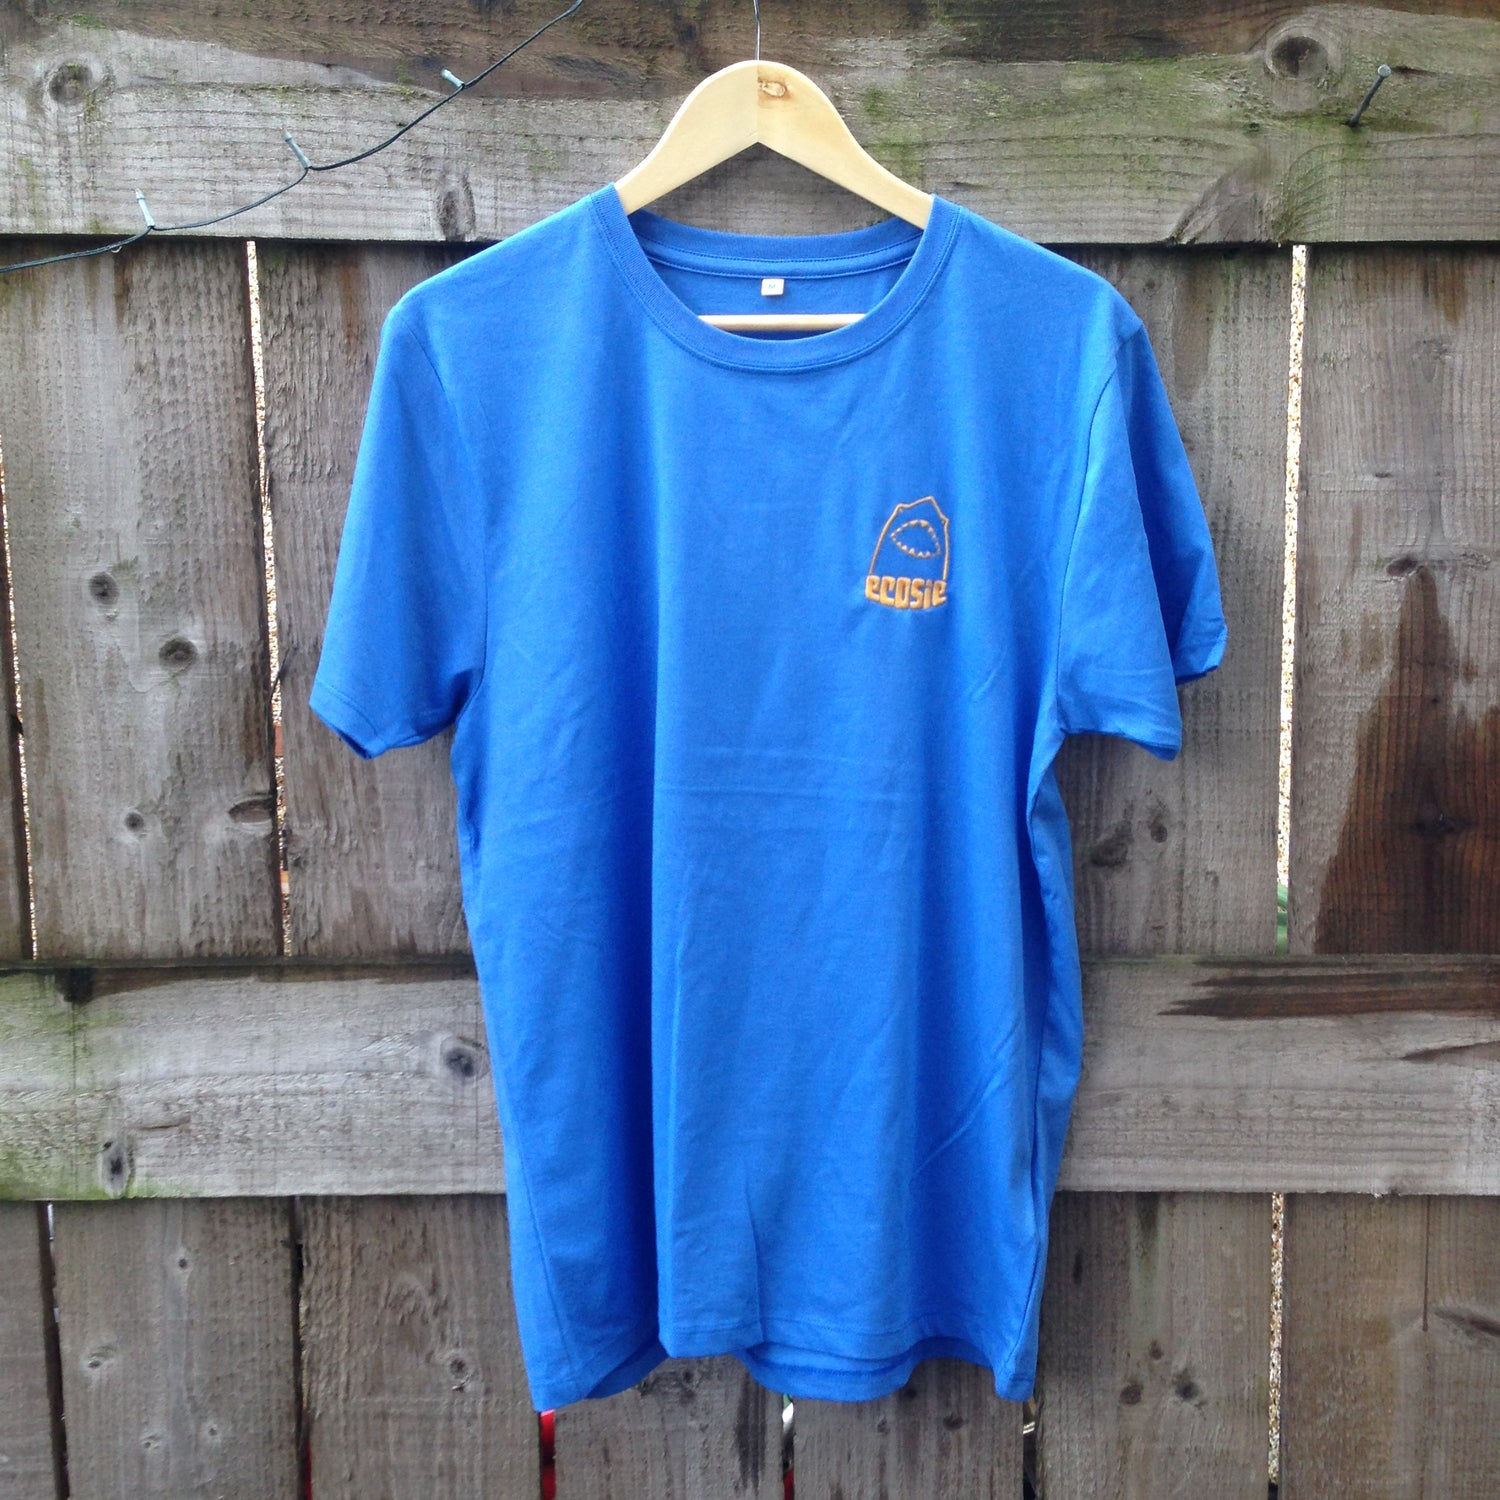 Image of Beachy Blue Ecosie McSharky Embroidered Organic Cotton T-Shirt